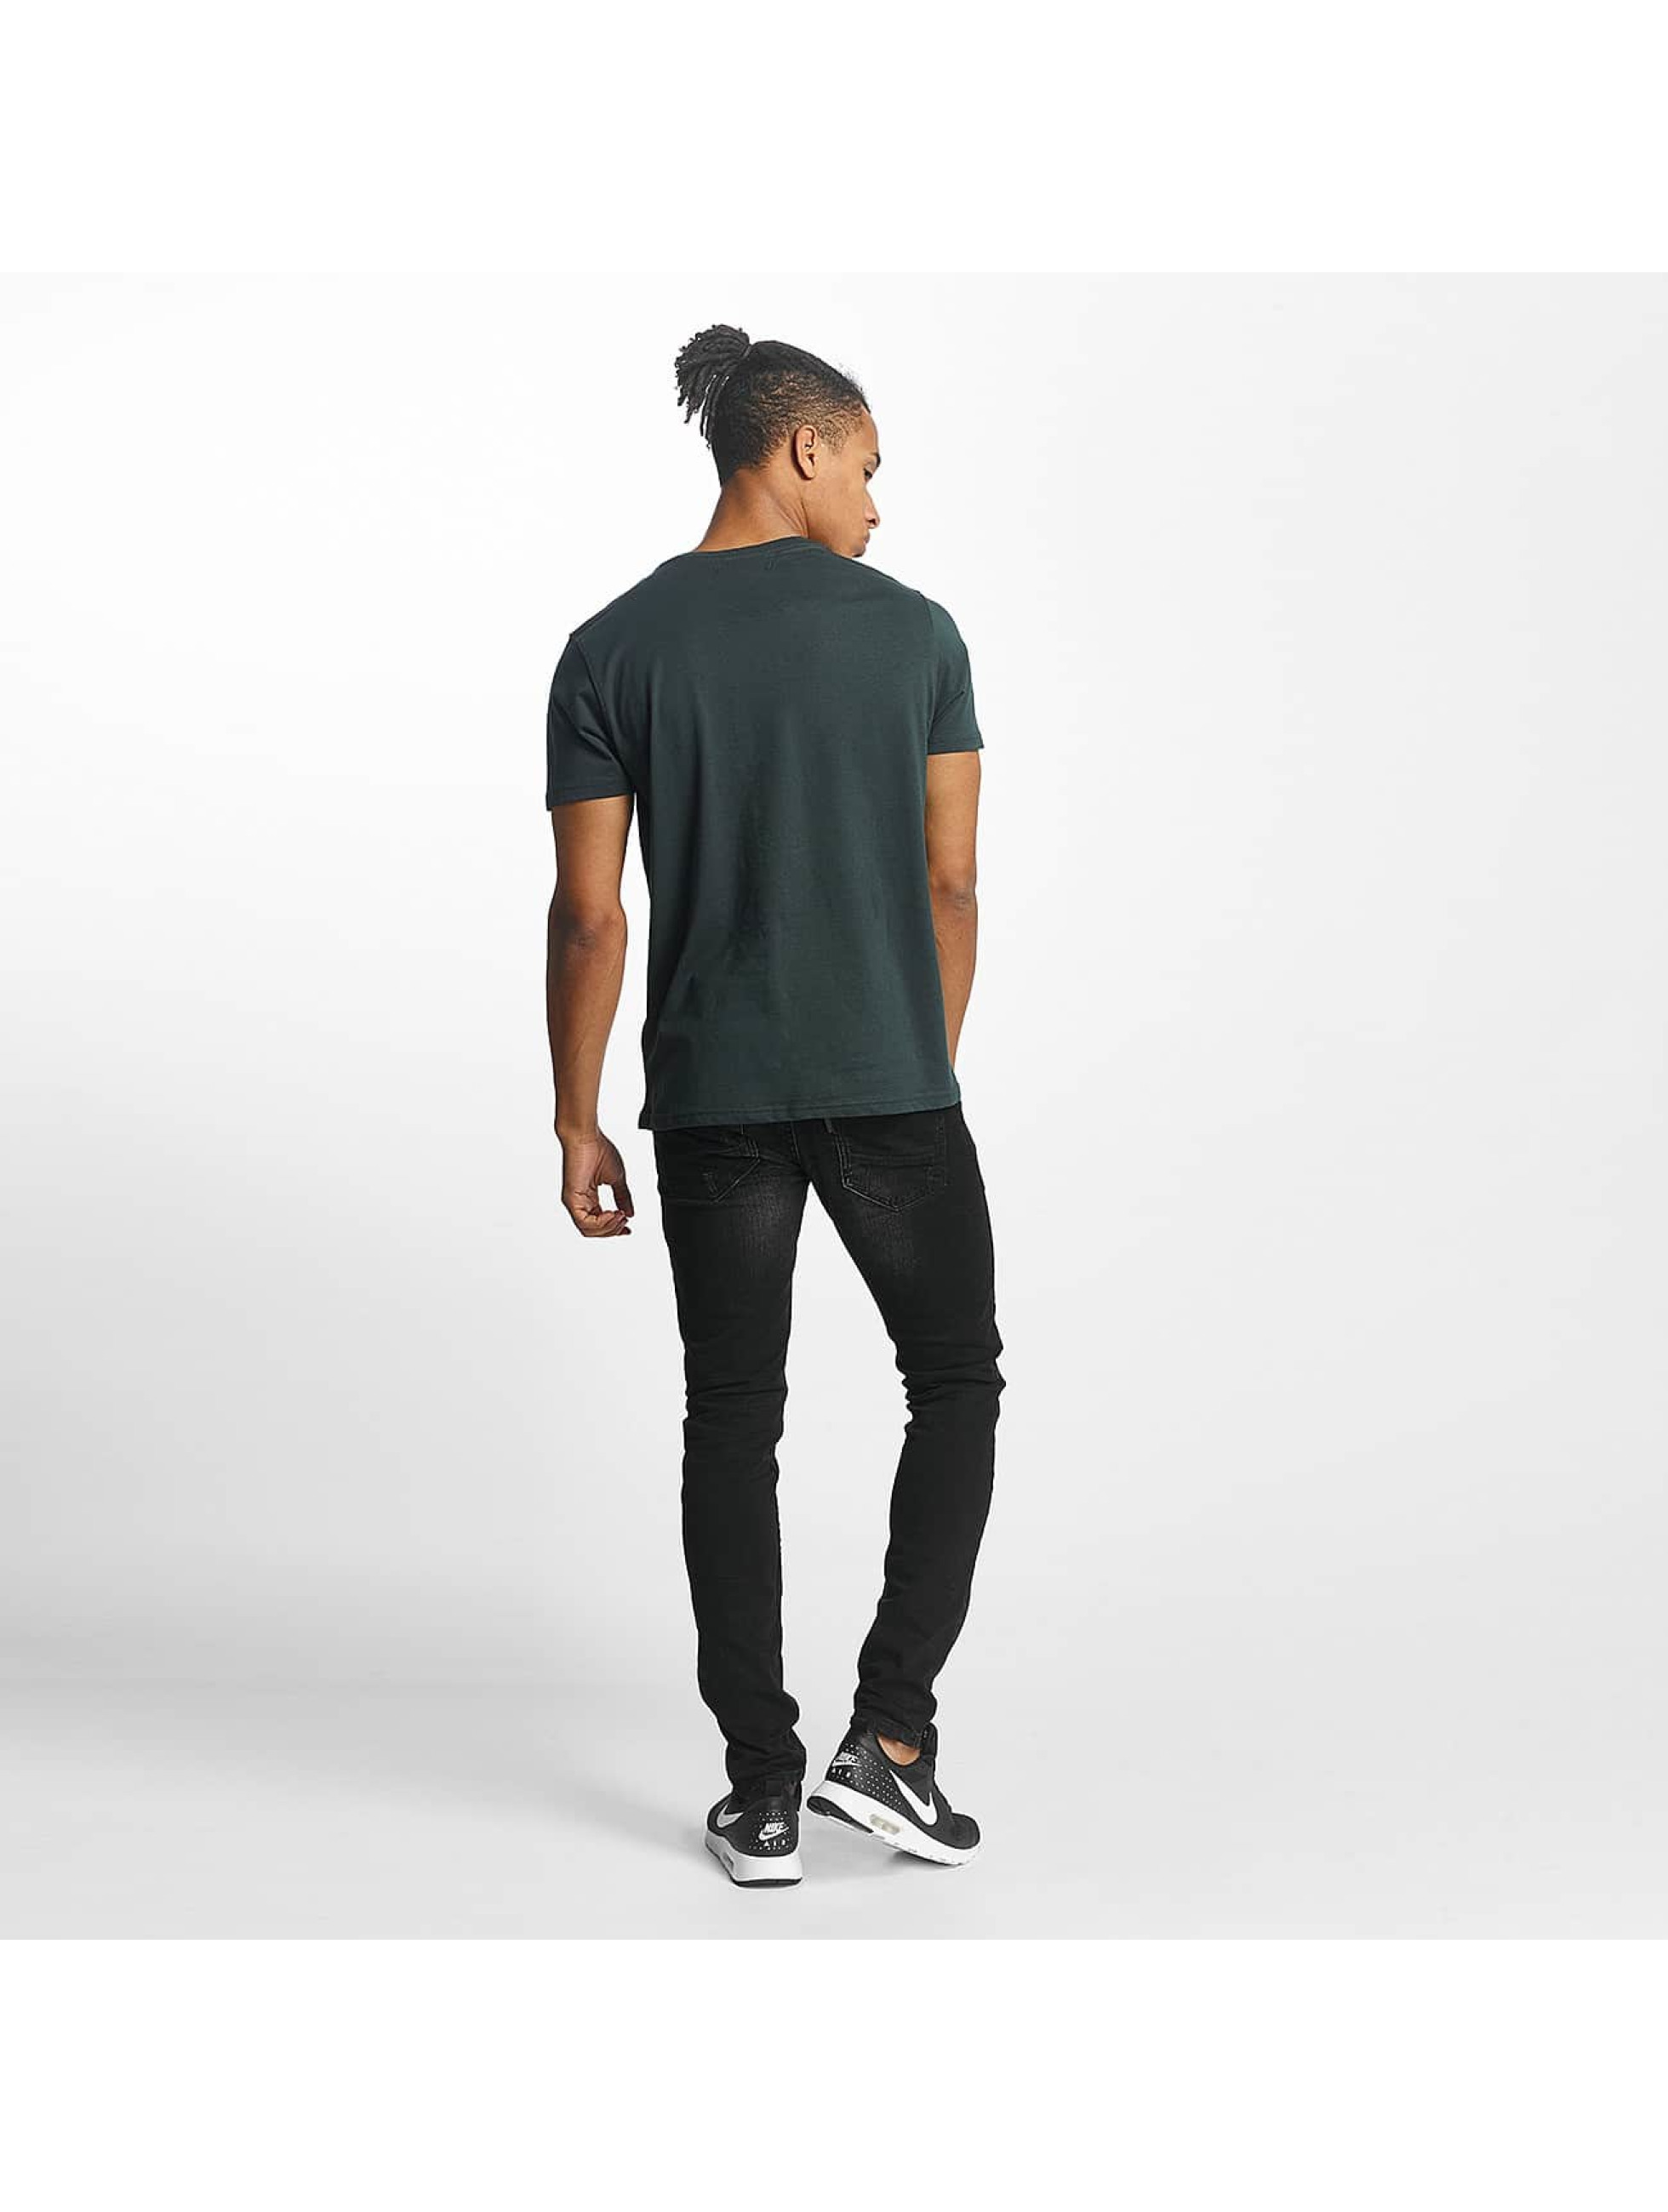 Paris Premium T-Shirt Old School vert